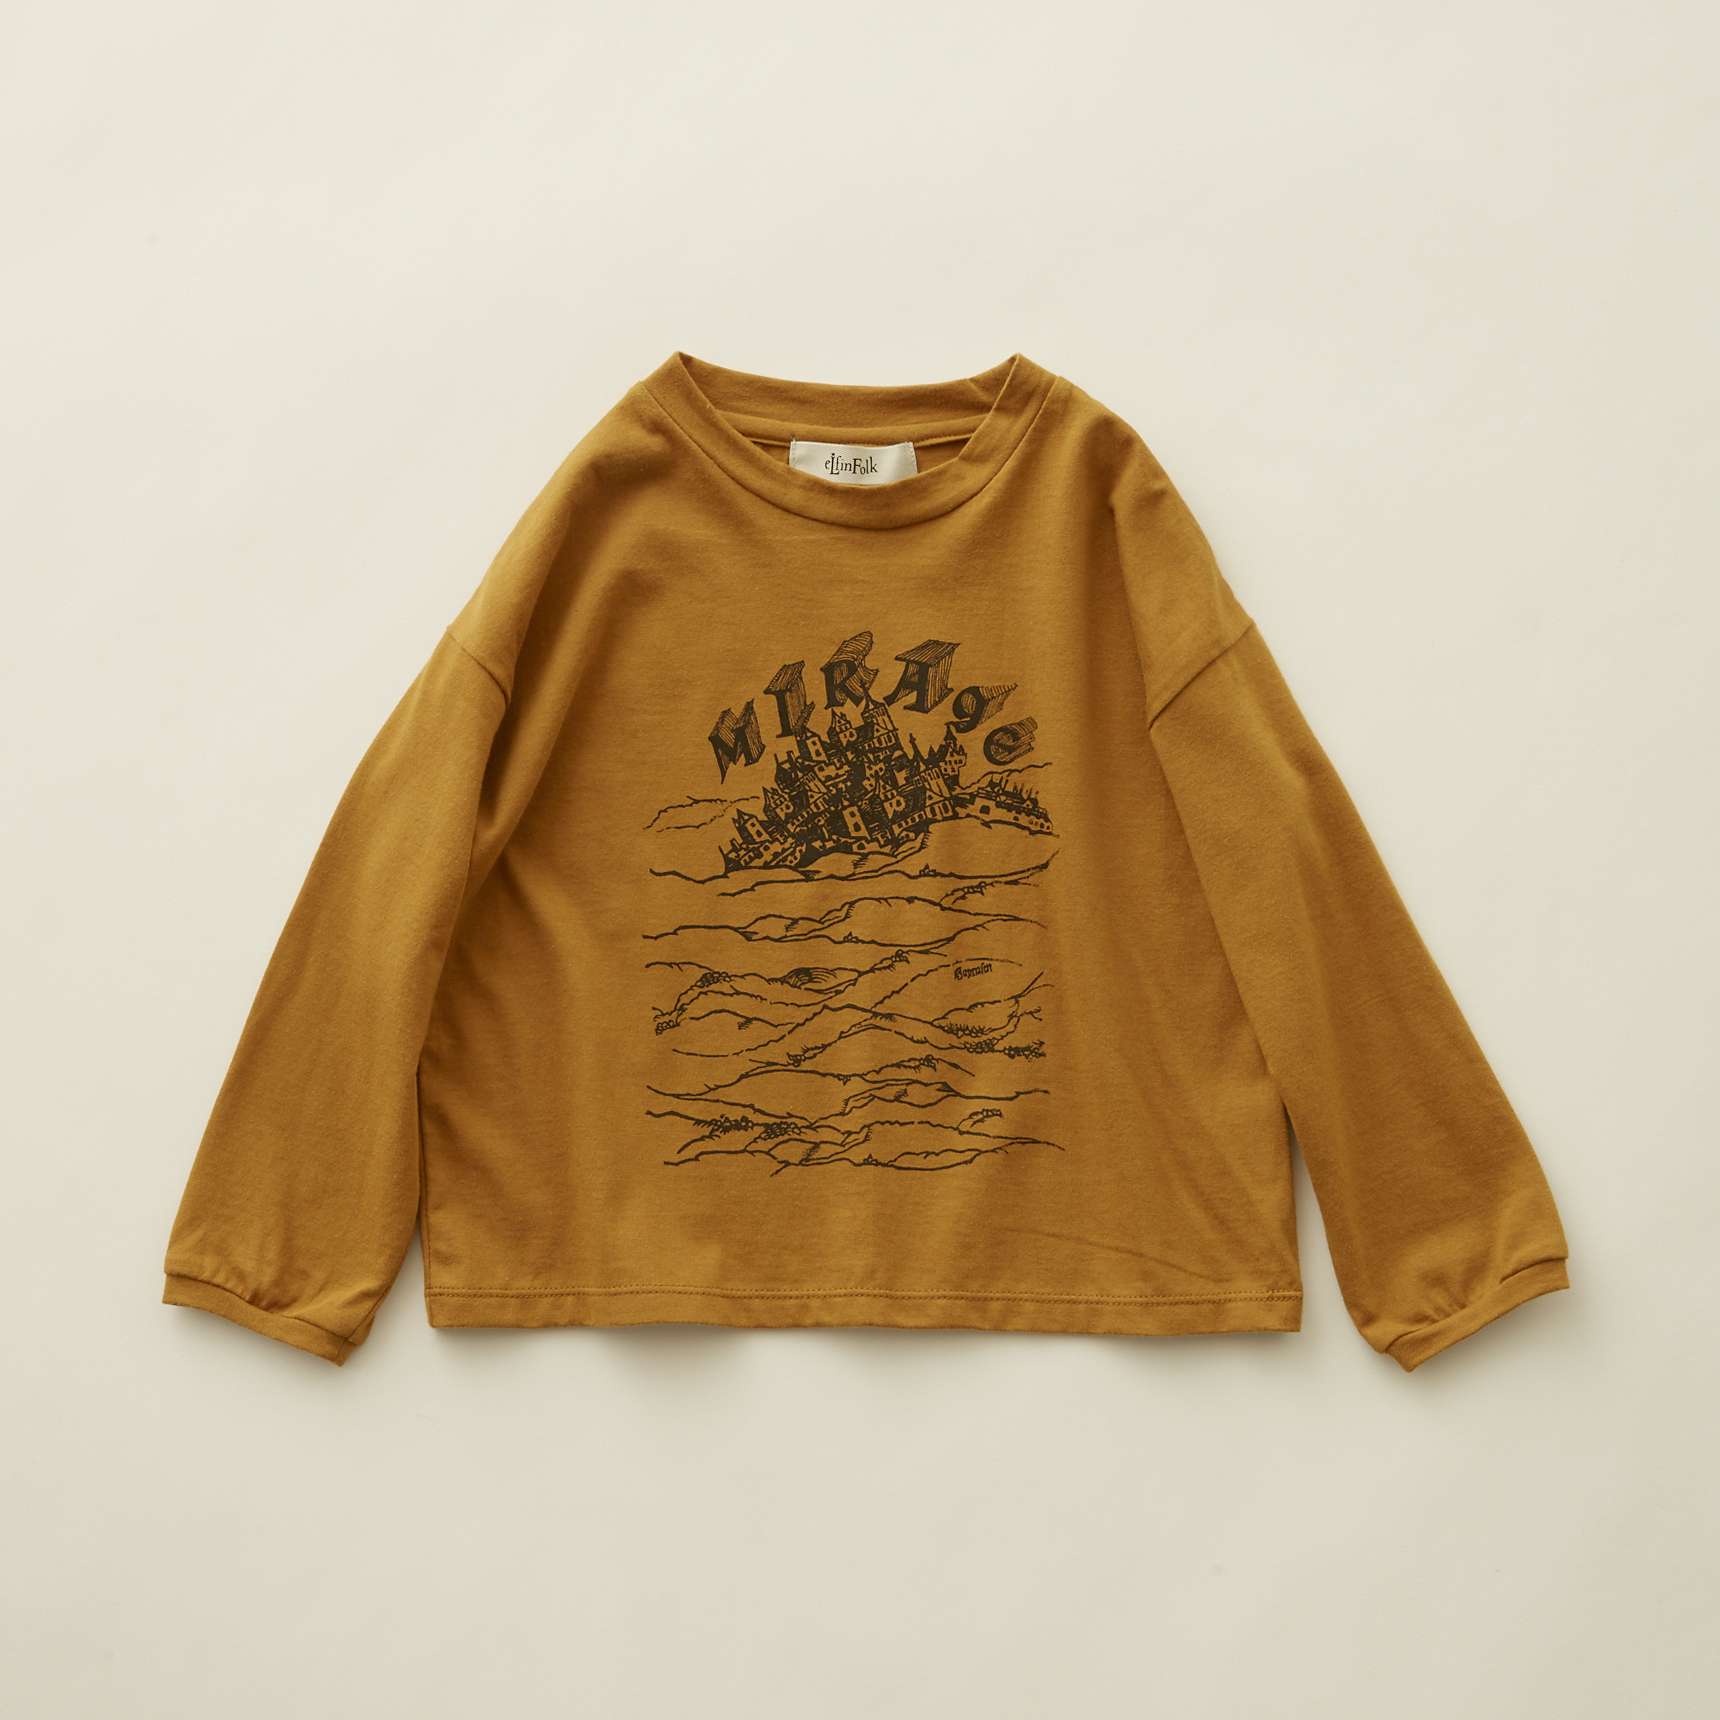 《eLfinFolk 2020AW》MIRAgE town  long sleeve-T / mustard / 110-130cm